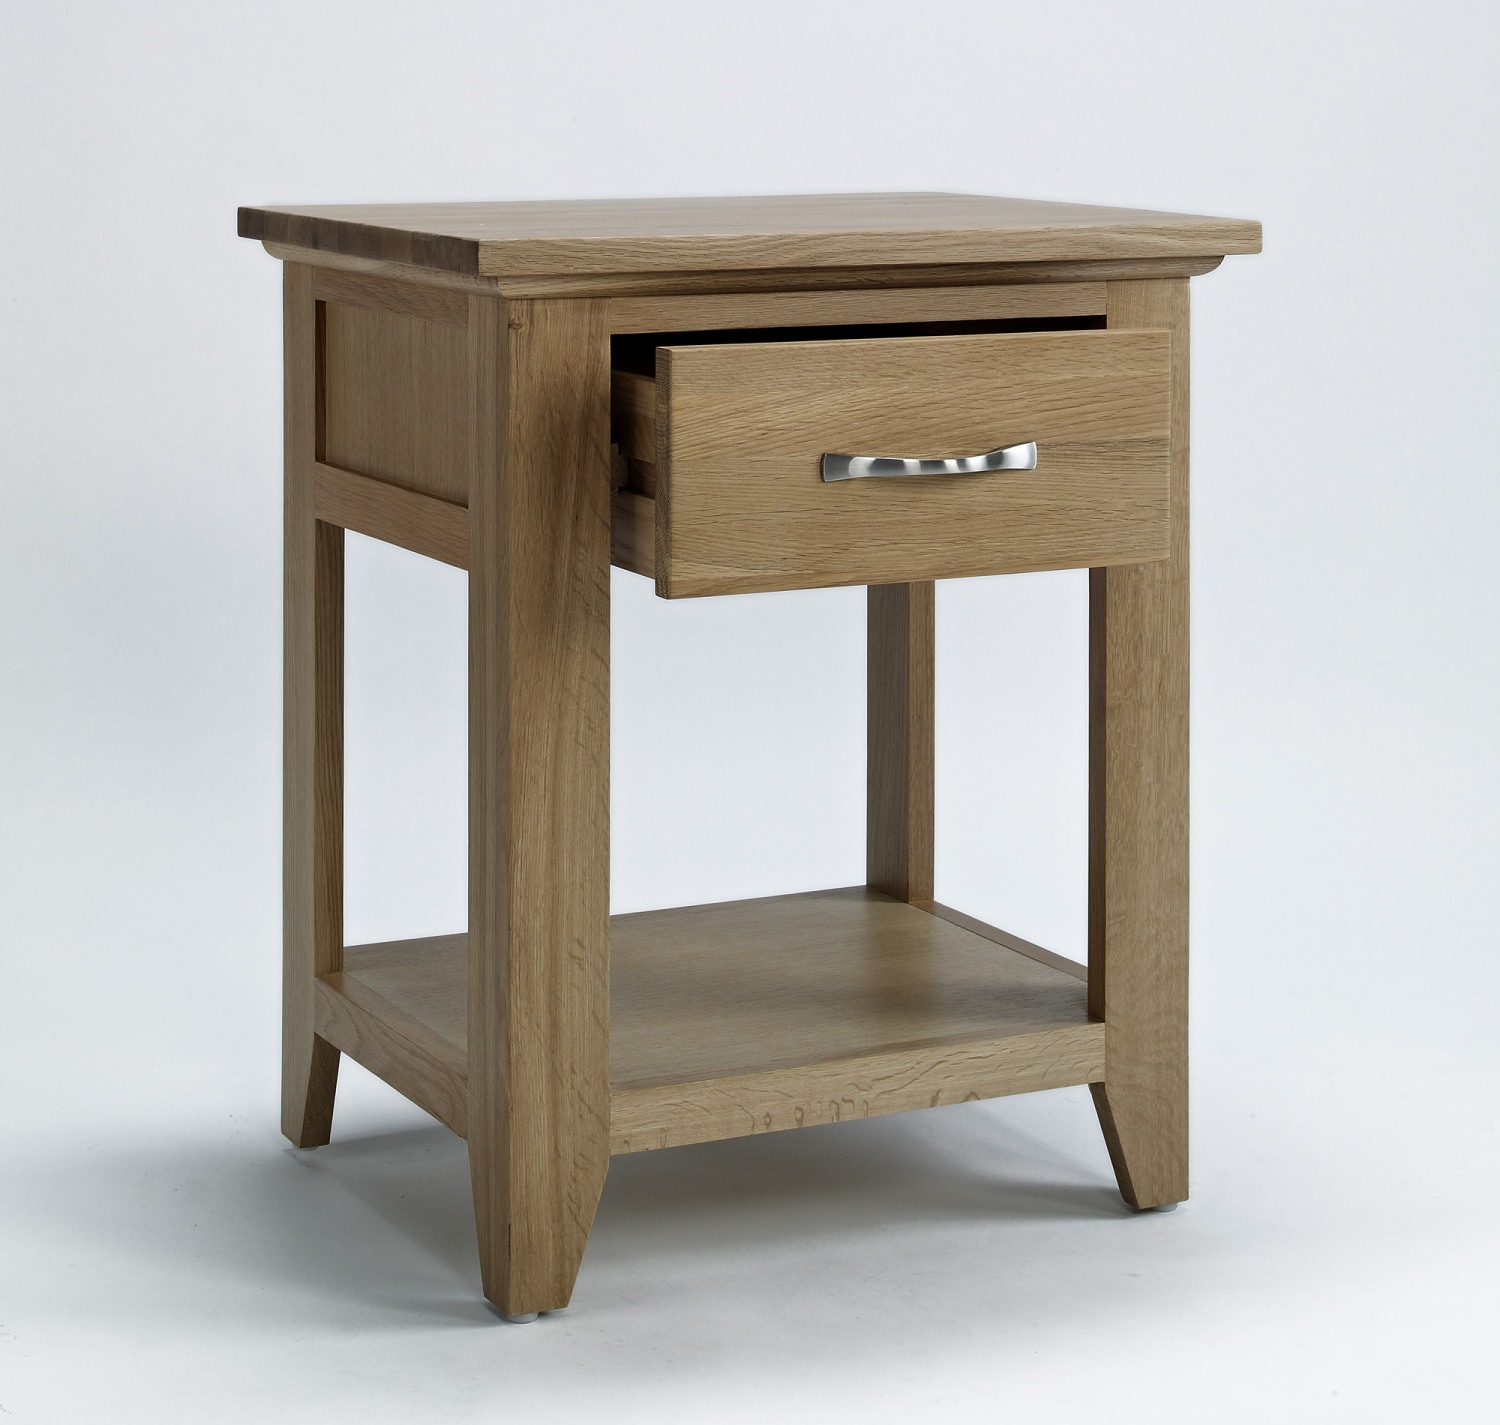 Compton Solid Oak Furniture Storage Lamp Table Ebay